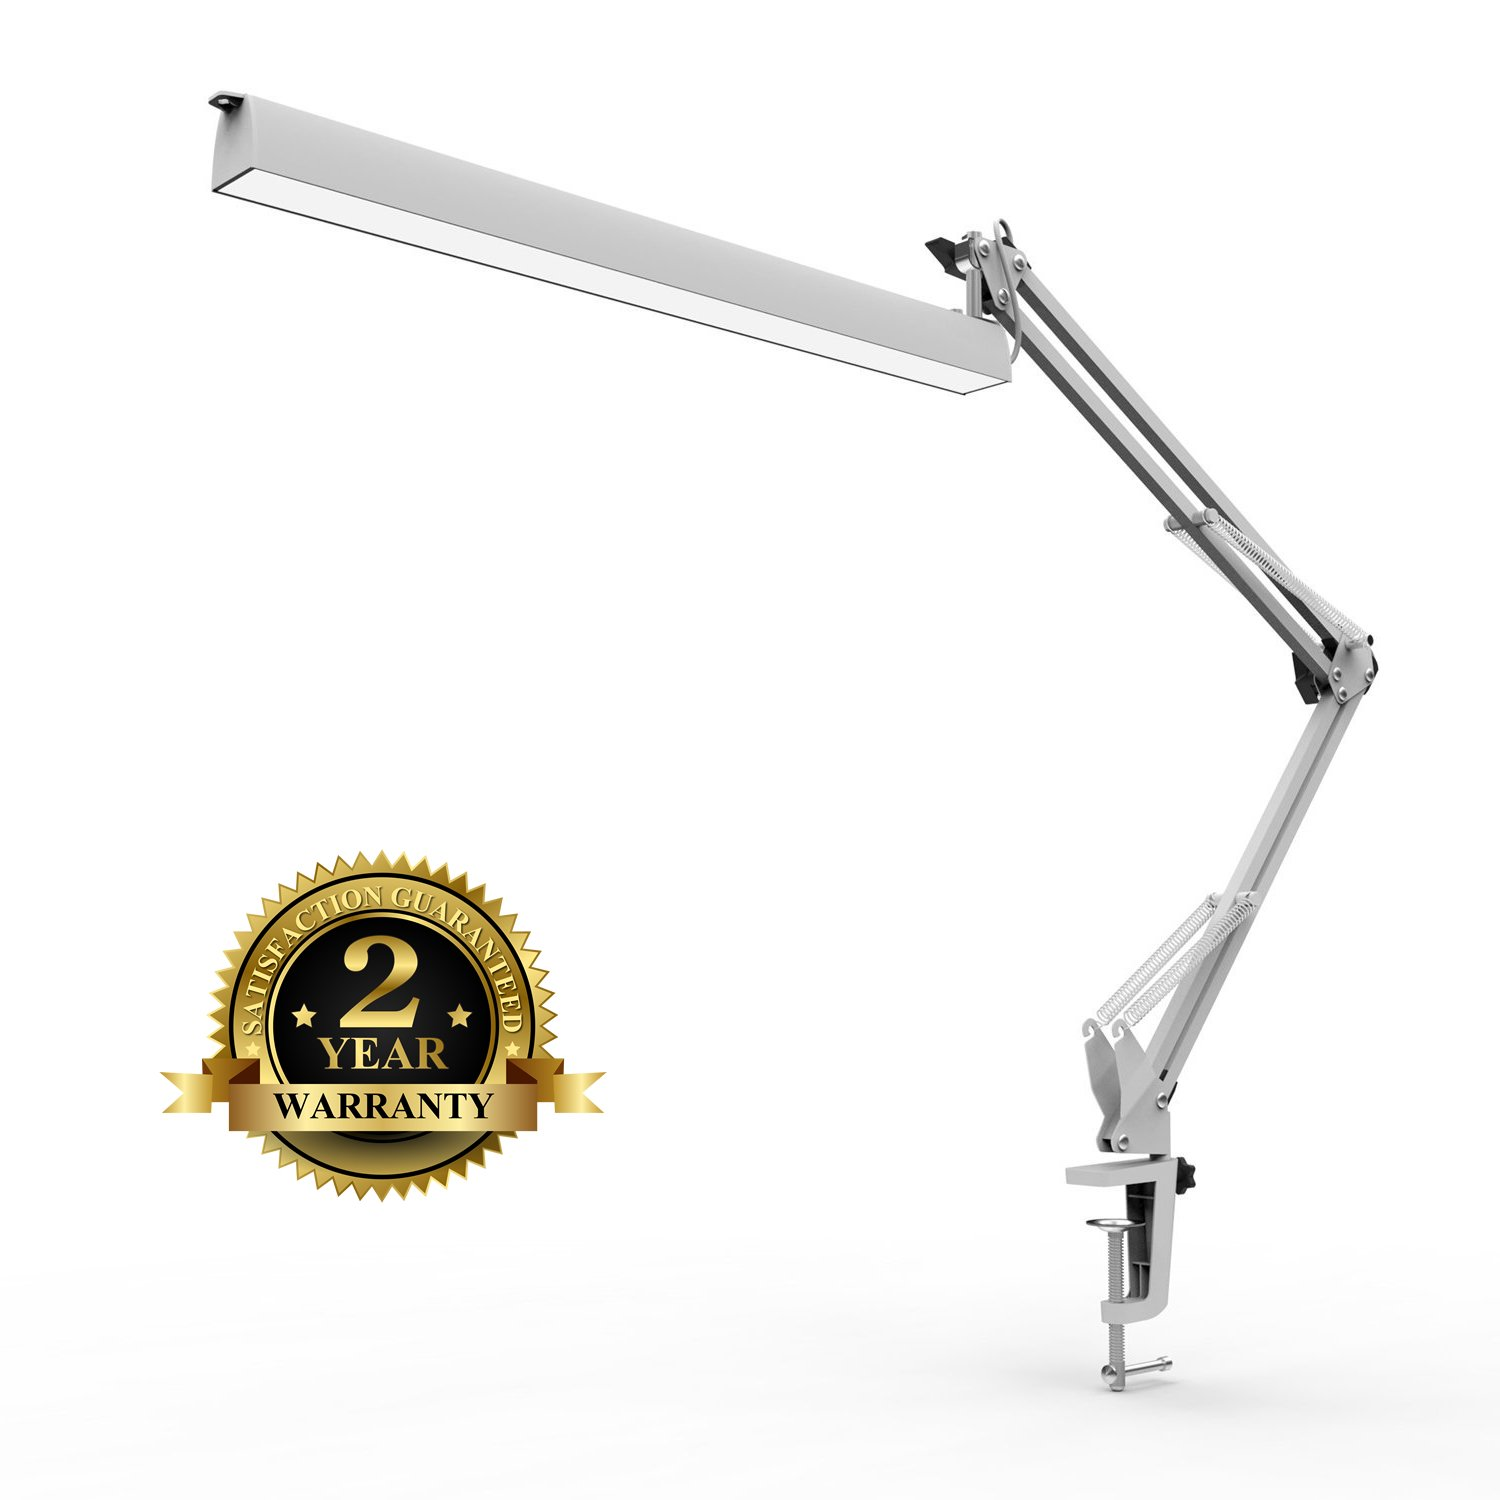 Metal Swing Arm led desk lamp clamp, Seaklight Architect Task Lamp / Drafting Table Lamp Work Light, 3 Level Dimmer with Touch Control,Highly Adjustable Arm, White